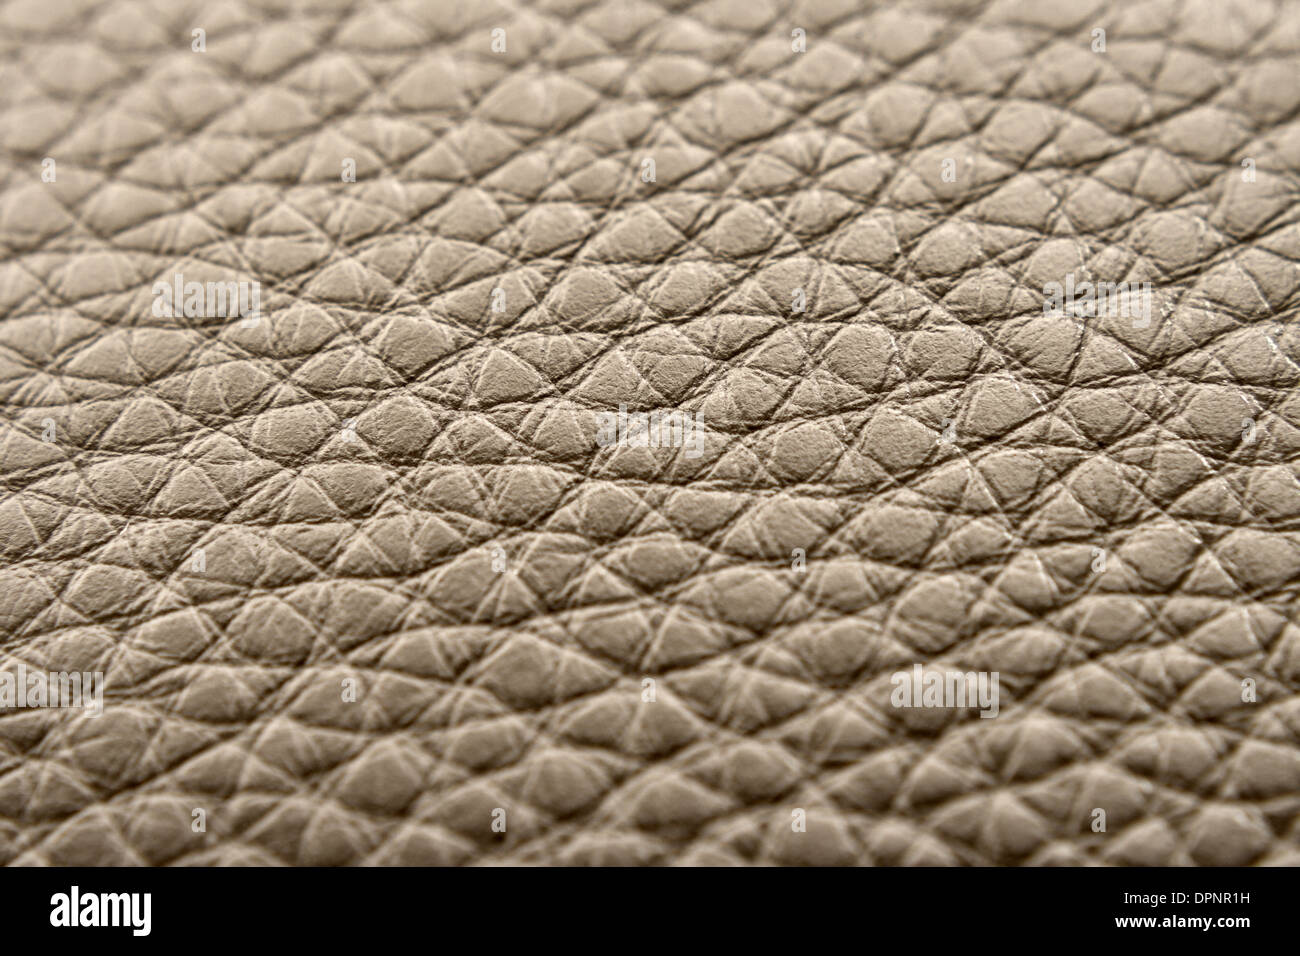 animal skin, backgrounds, leather, textured, dark, macro, empty, material, no people, pattern, textile, blank, bumpy, close-up, - Stock Image